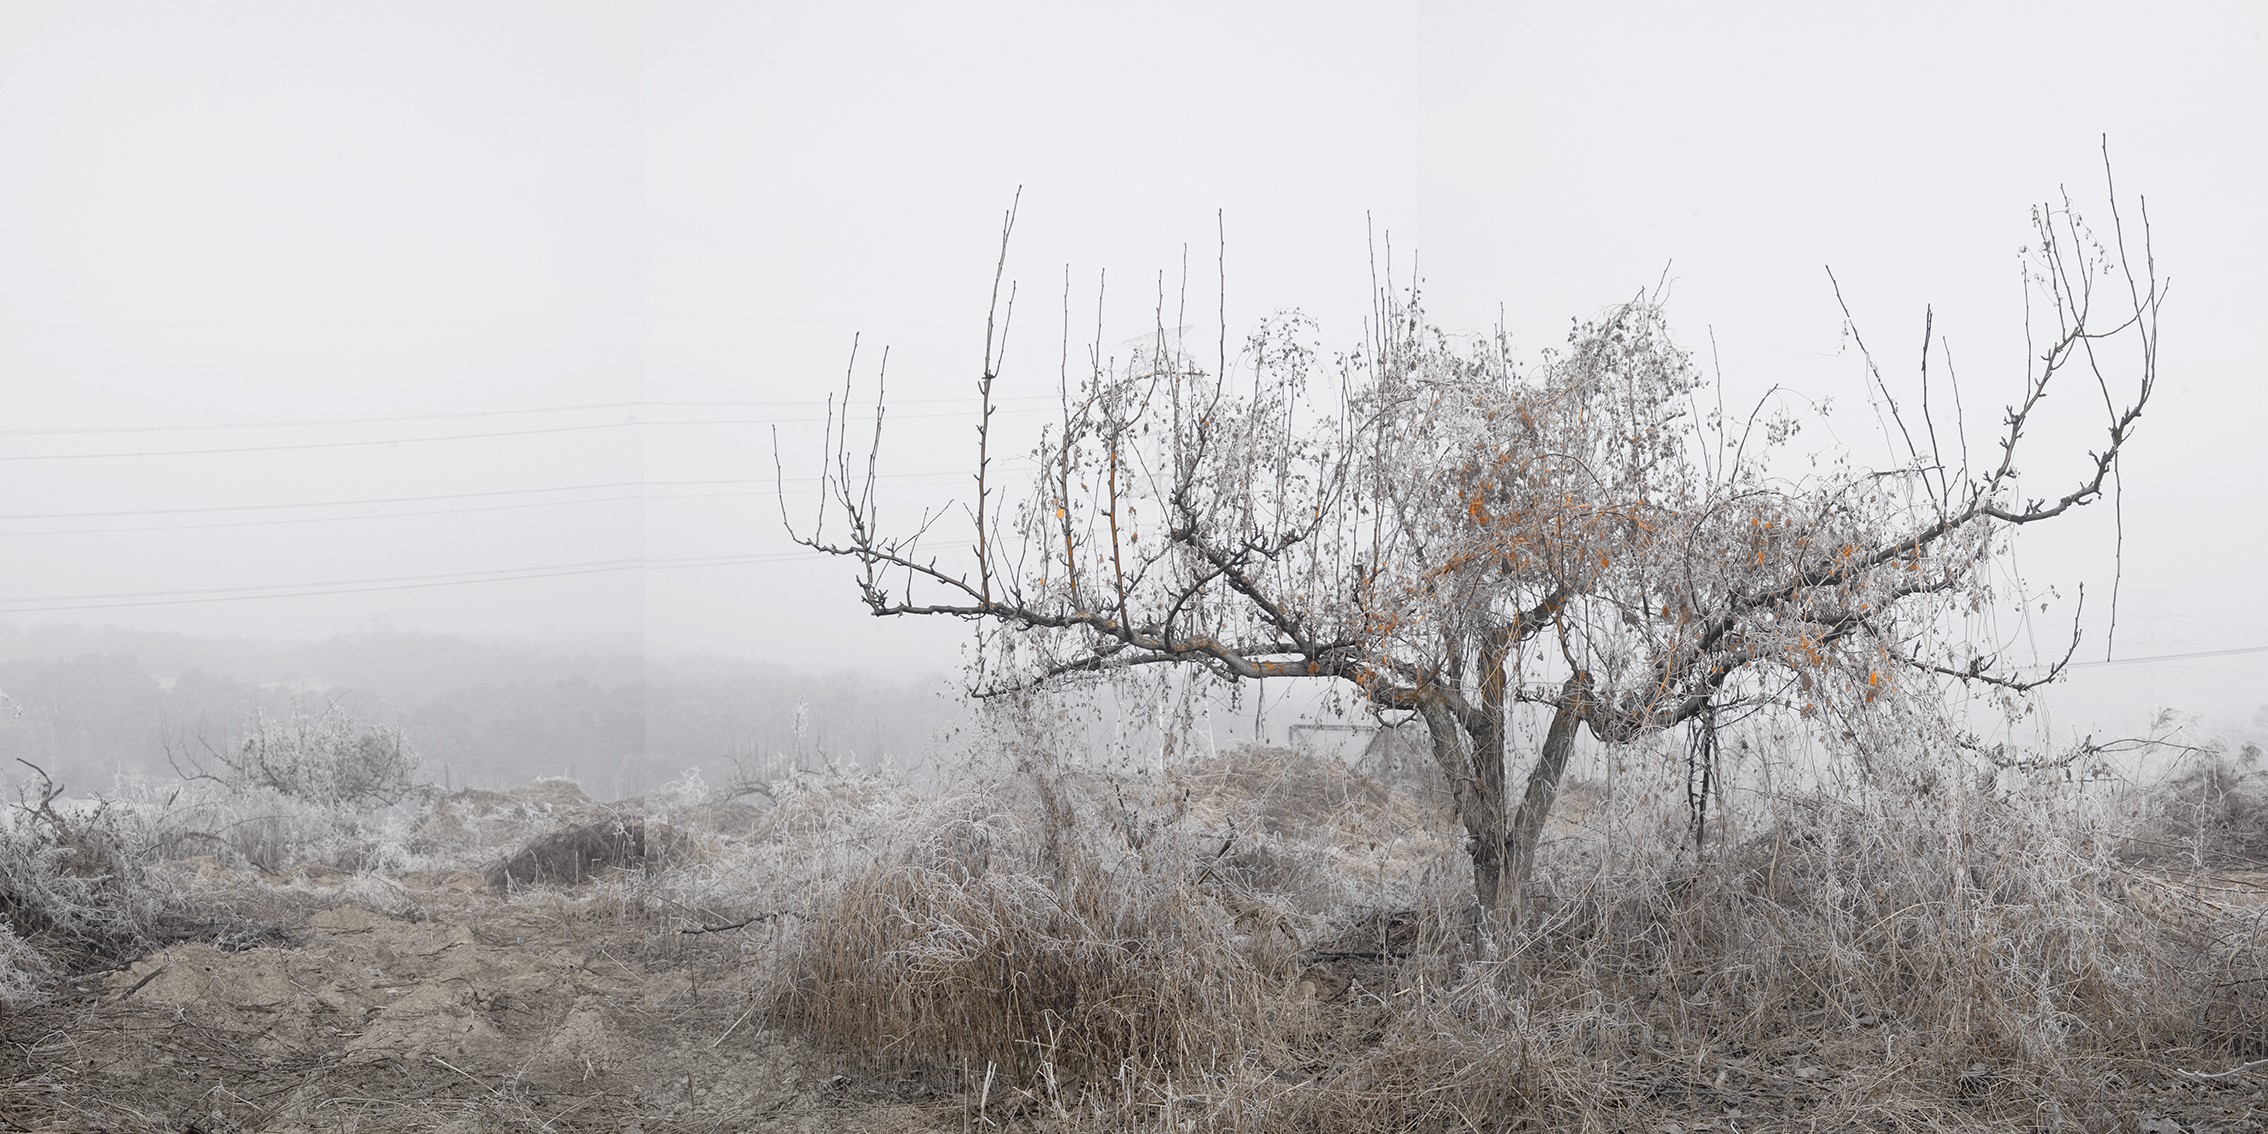 Honggoo Kang, Mist and Frost 17, Digital Print, 98.5x178.5cm, 2011, ONE AND J